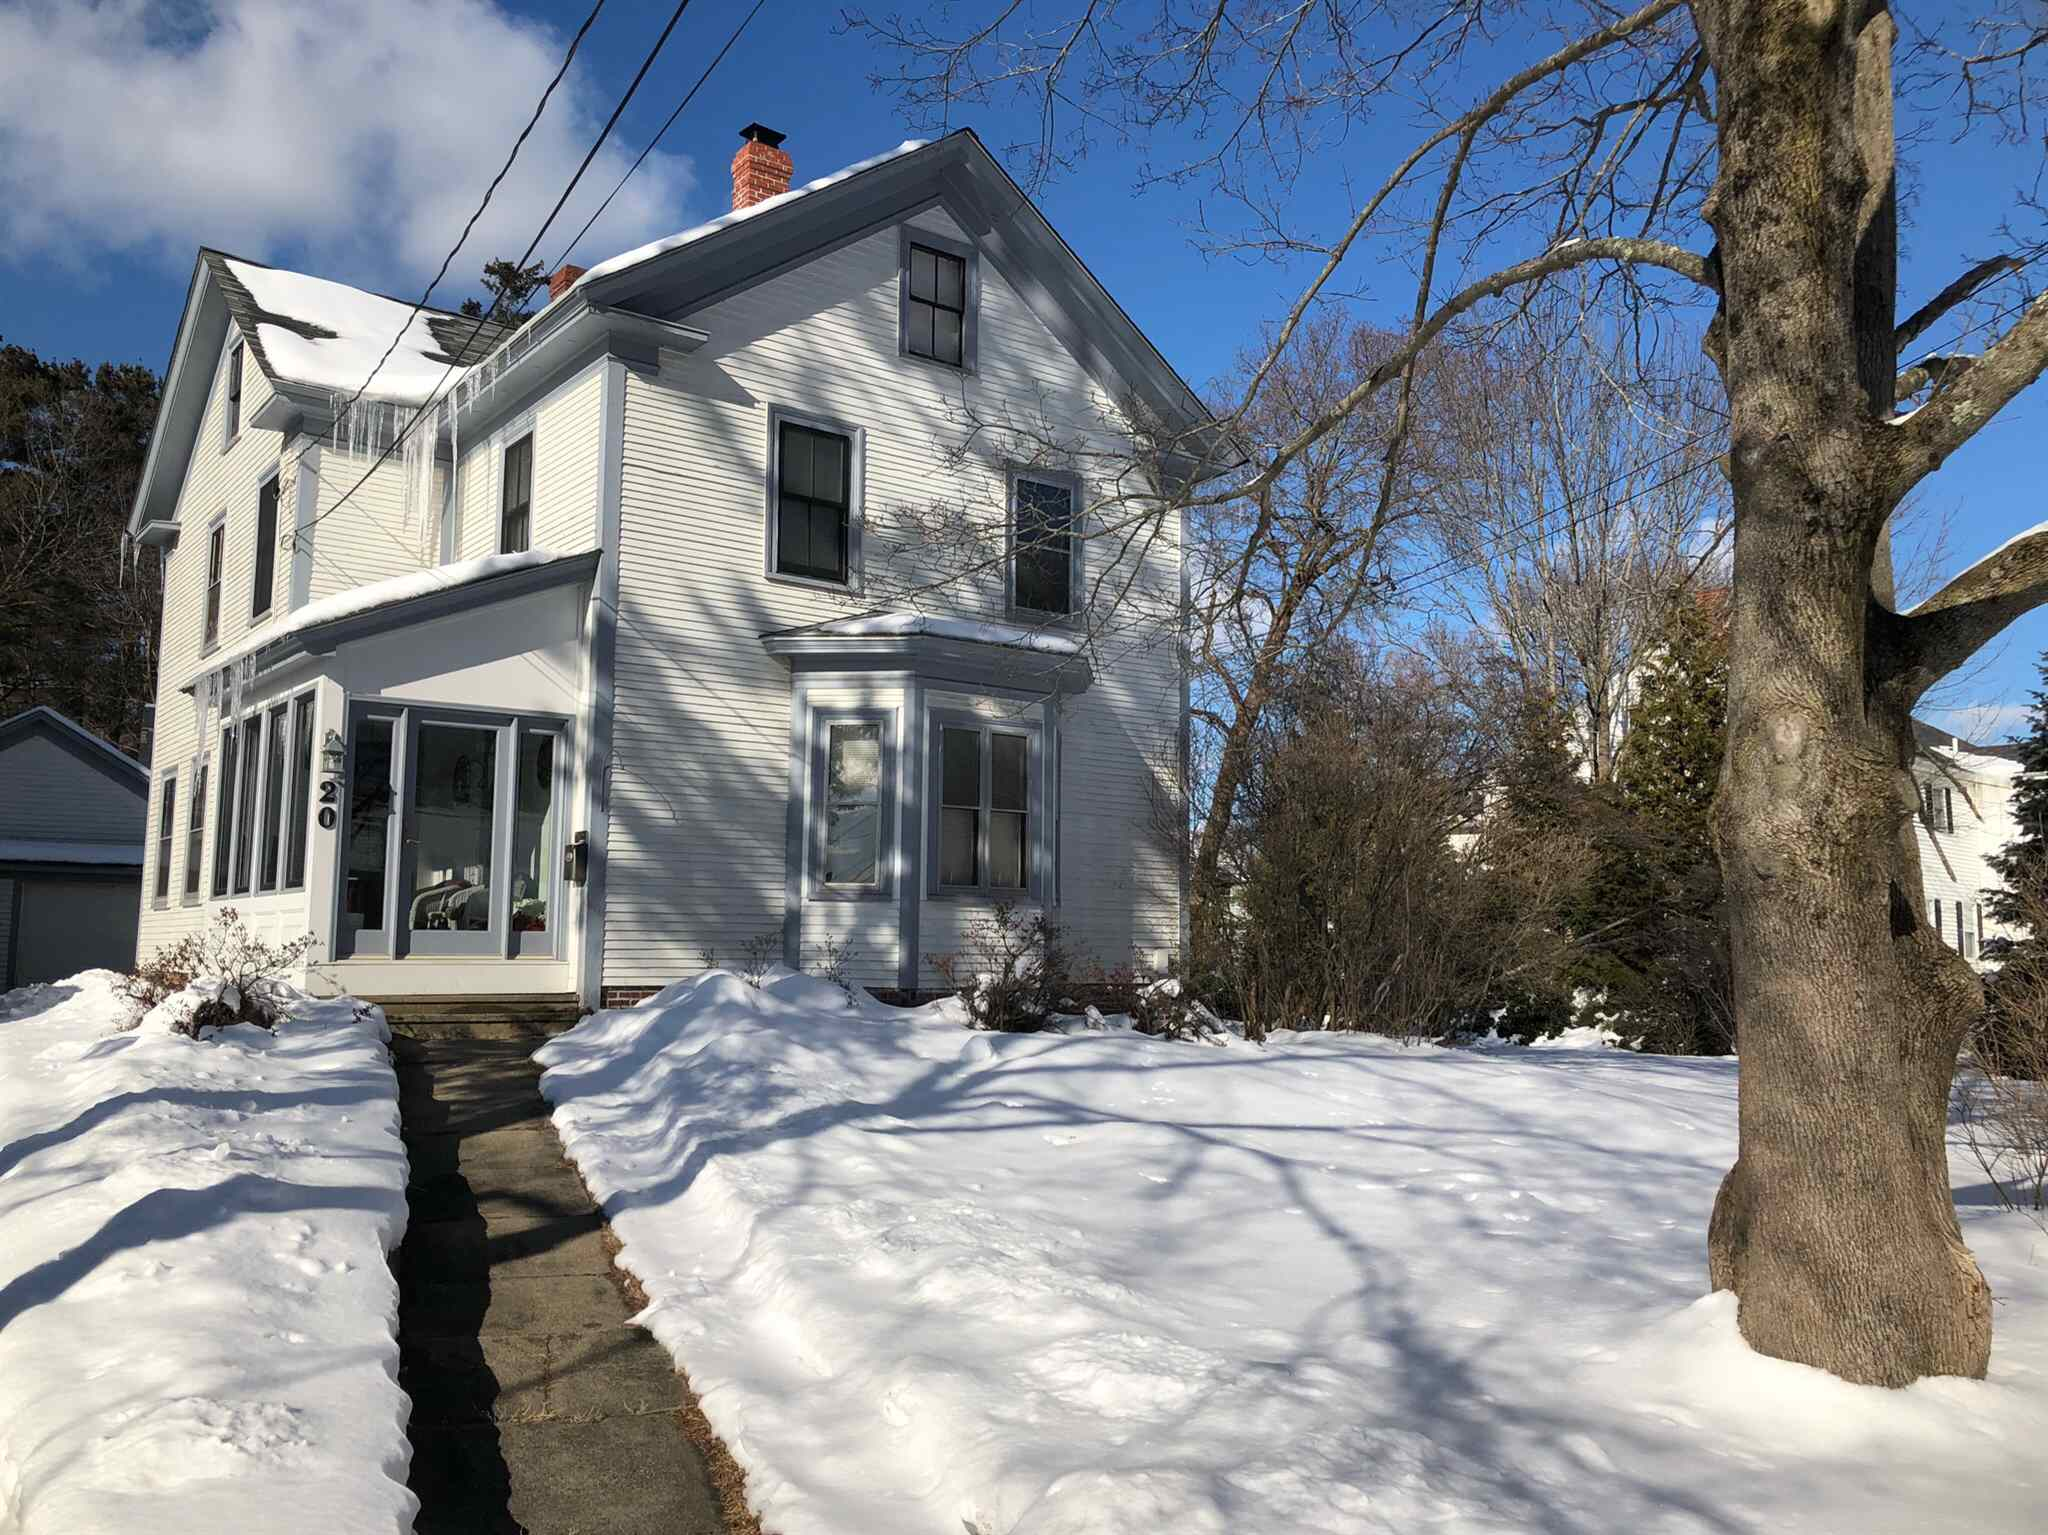 MLS 4847205: 20 Hall Place, Exeter NH